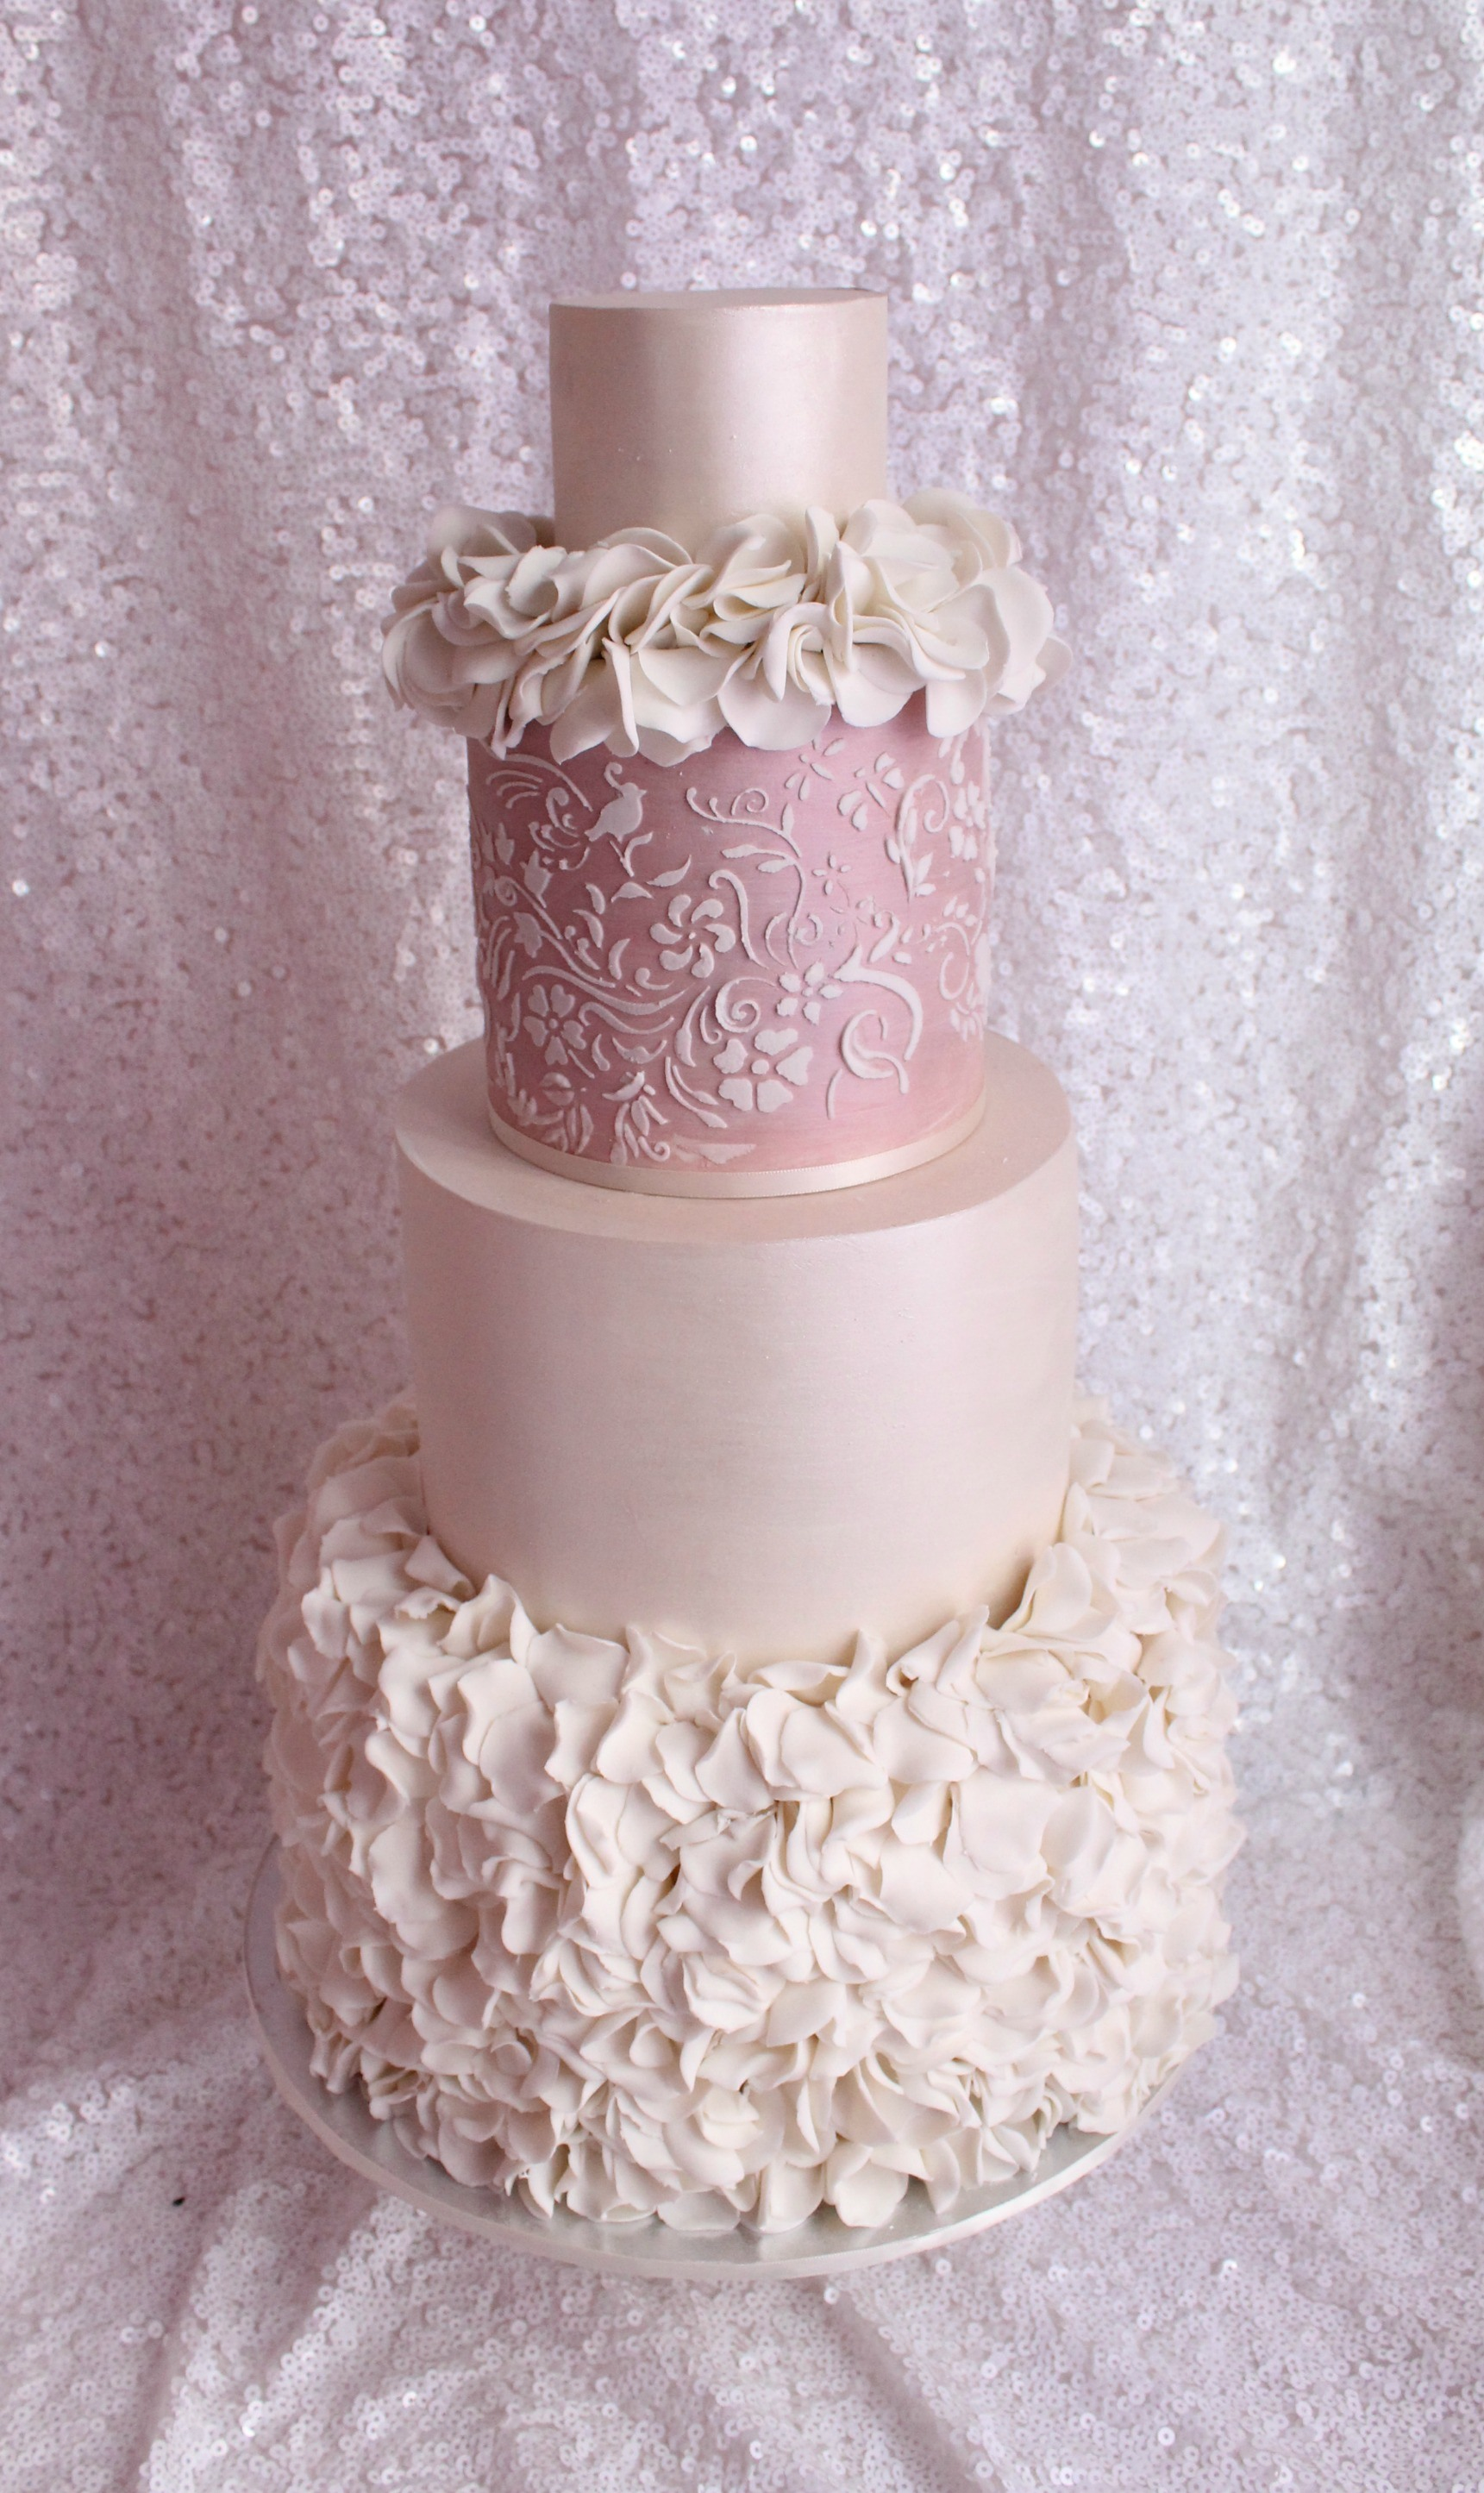 Pink and white ruffle wedding cake